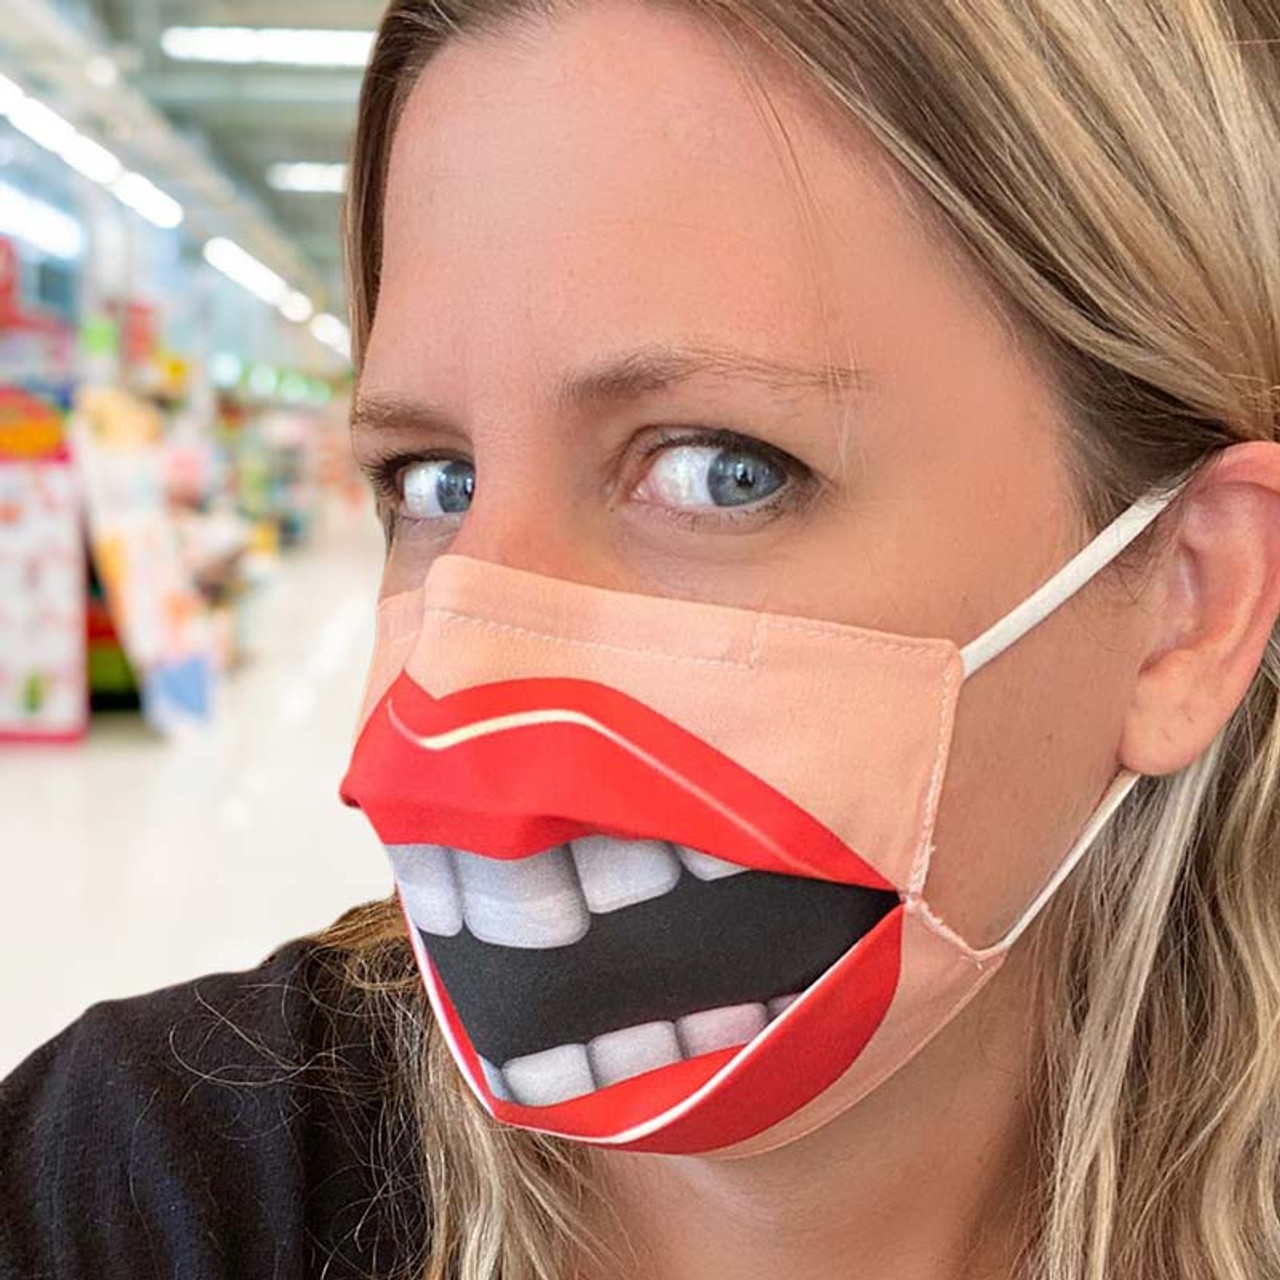 Instant Smile Face Mask - Reveals a funny open mouth.